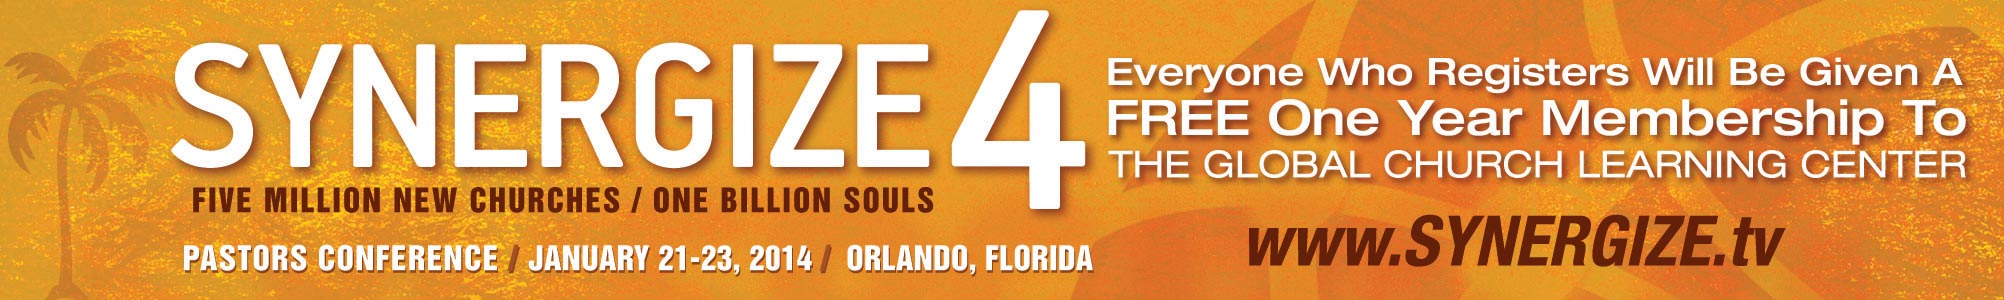 Synergize 4 Pastors Conference: January 21 – 23 in Orlando, FL